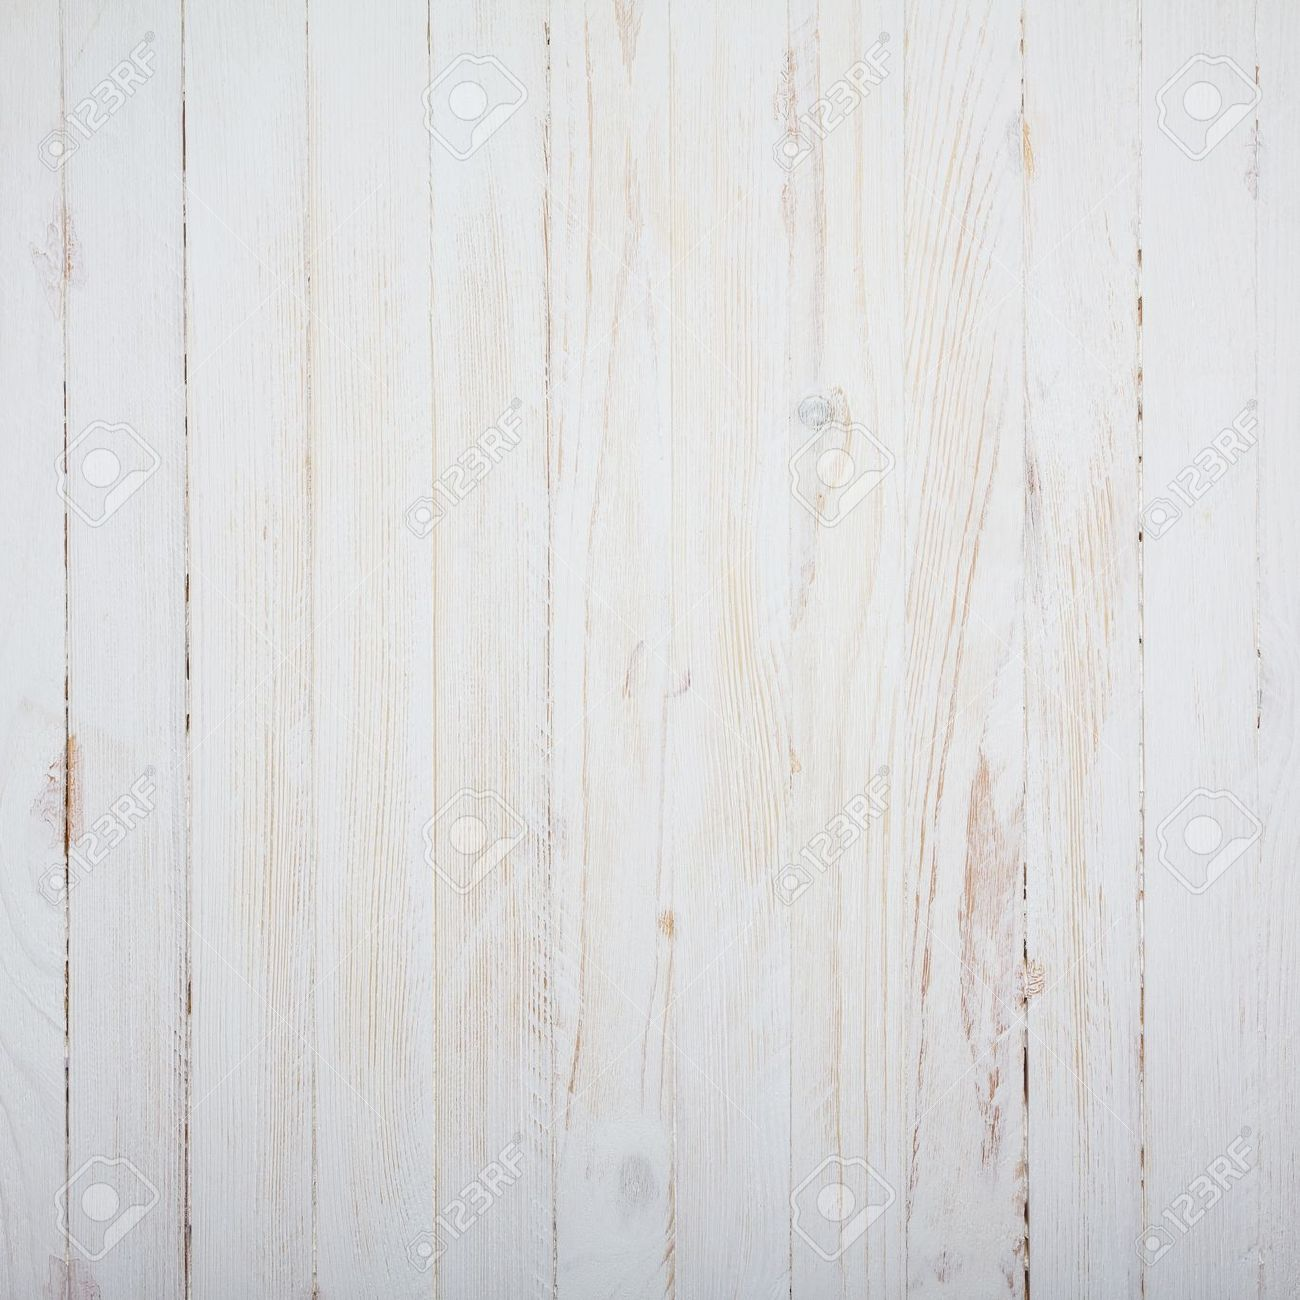 White wood table texture - Vintage White Wooden Table Background Top View Stock Photo 21158278